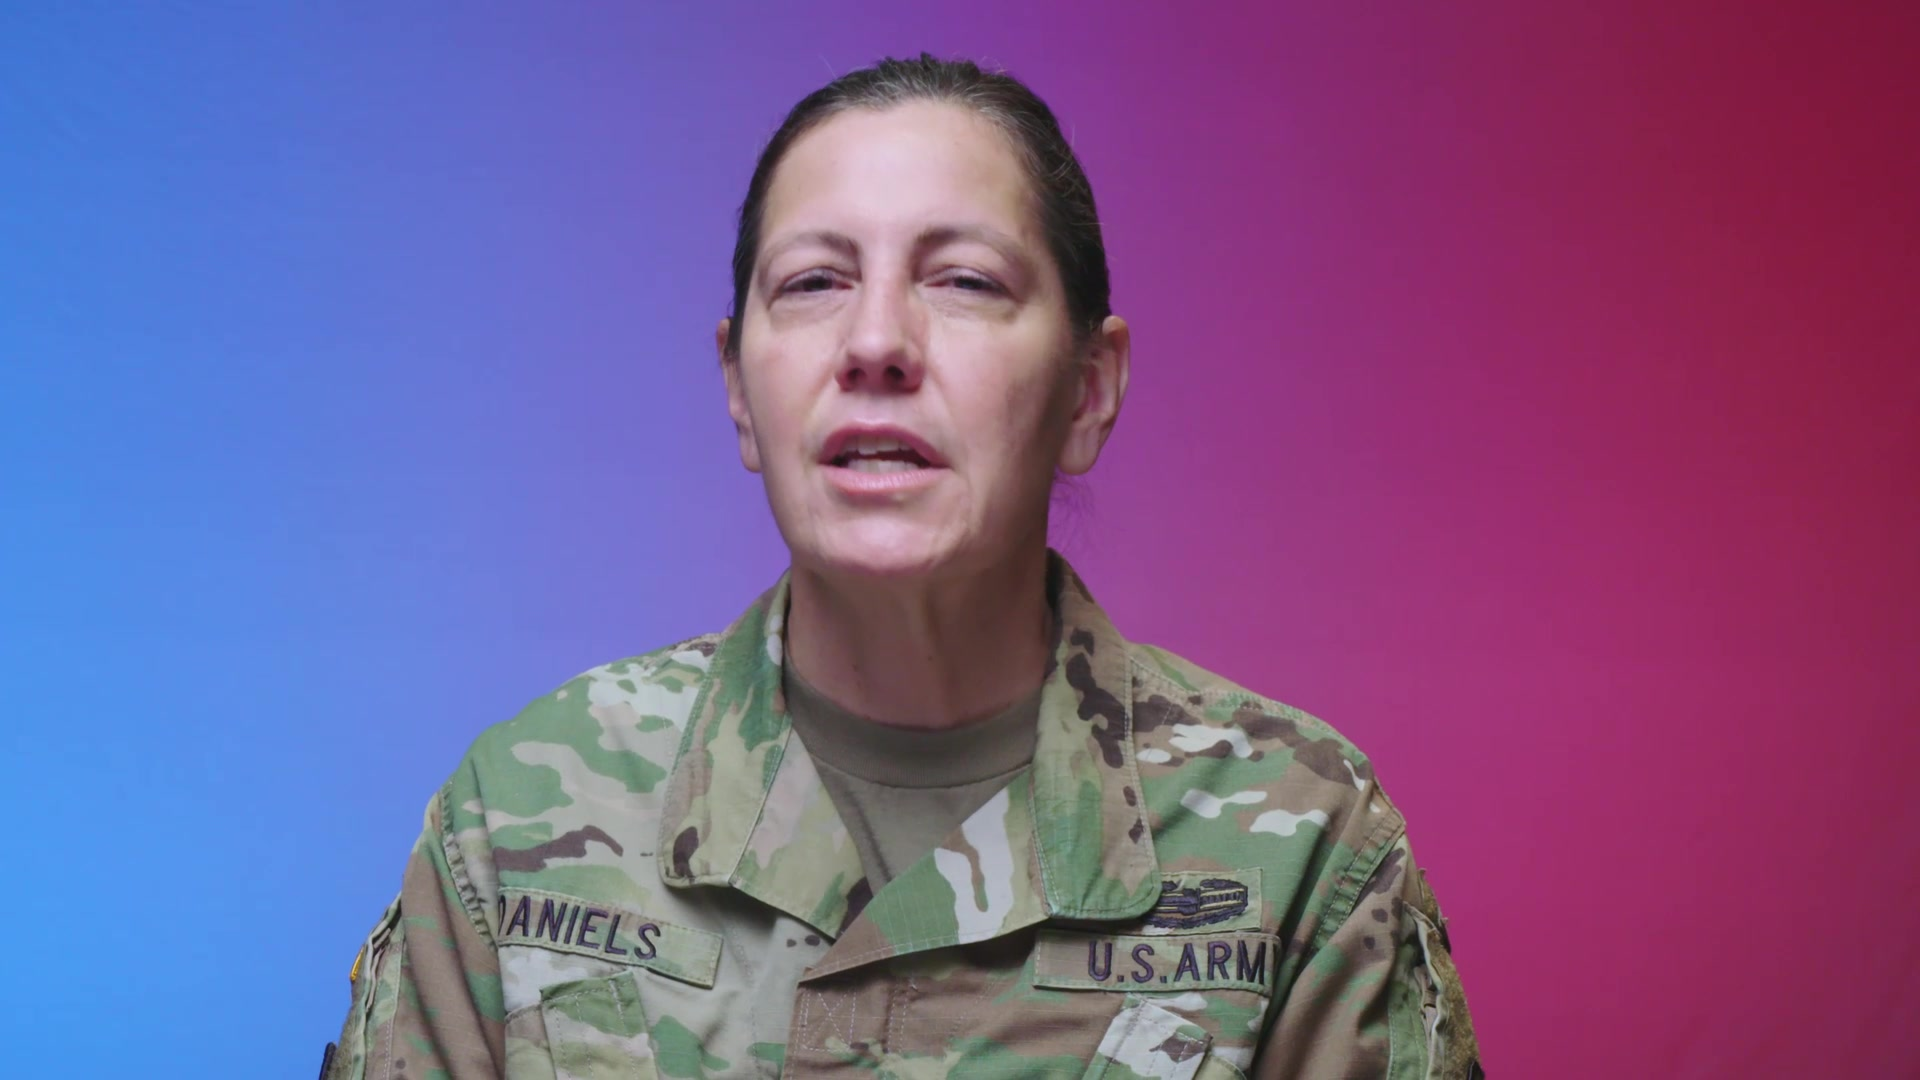 Lt. Gen. Jody Daniels, chief of Army Reserve and commanding general U.S. Army Reserve Command, speaks out against extremism. Extremism is not welcome in our ranks and we must get back to the culture of dignity and respect within our ranks so that we can be ready now, shaping tomorrow.